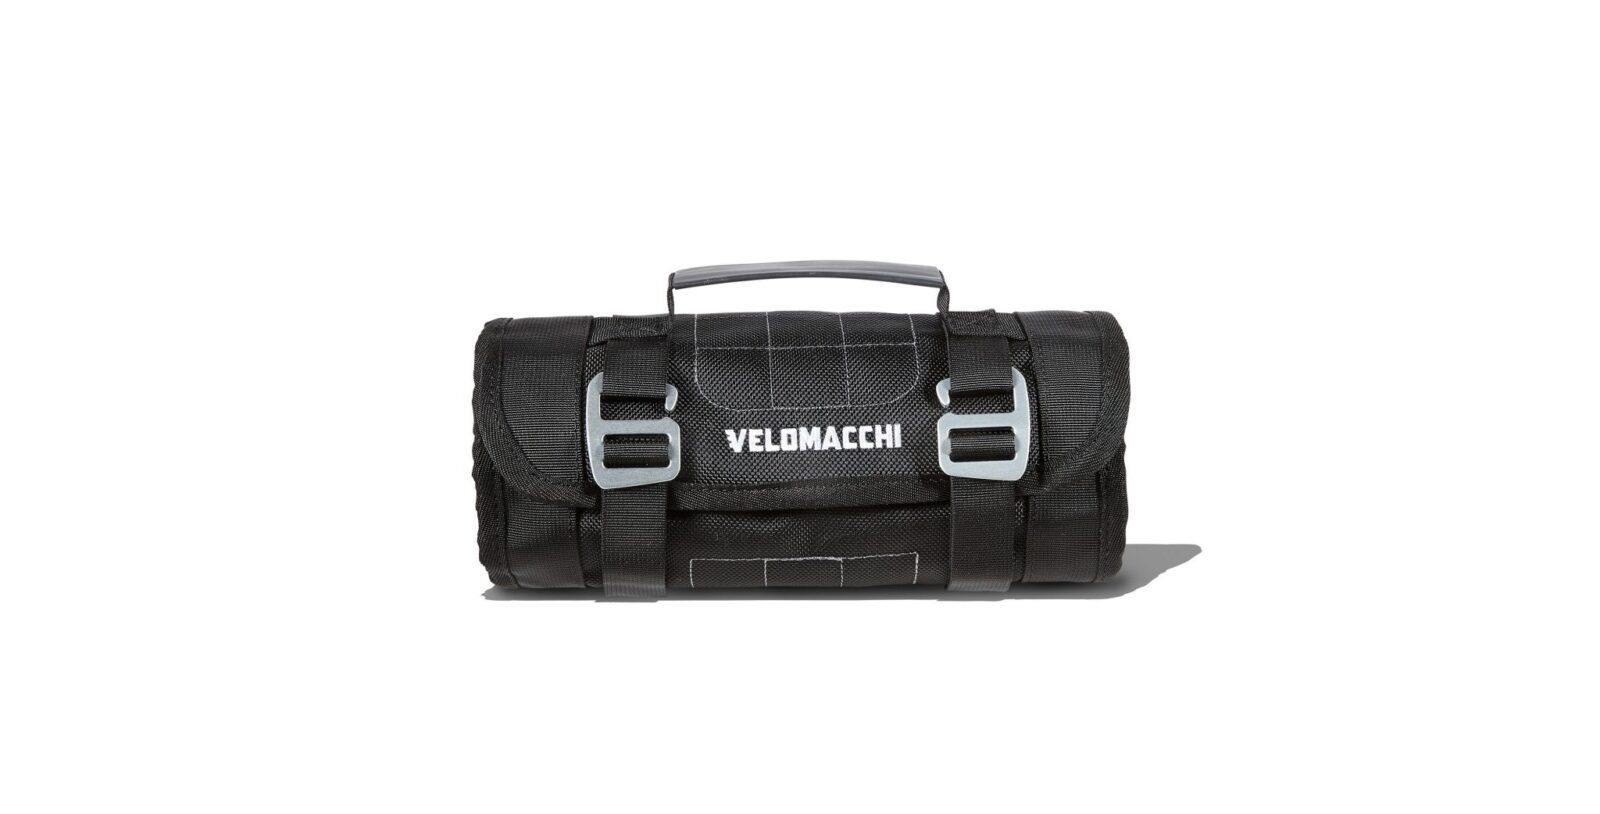 Velomacchi Speedway Tool Roll 1600x814 - Velomacchi Speedway Tool Roll